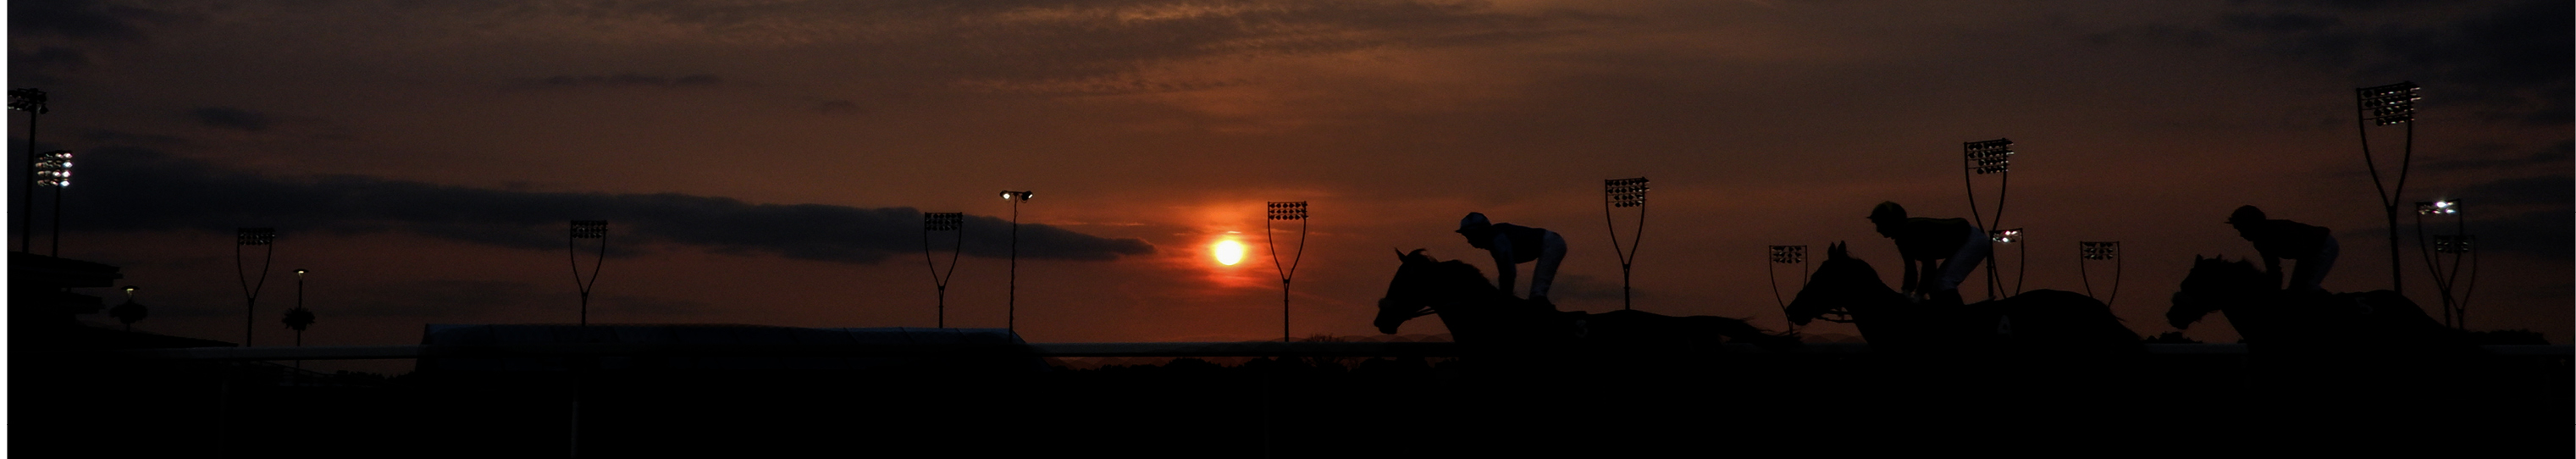 Adjusting a handicap rating - The British Horseracing Authority